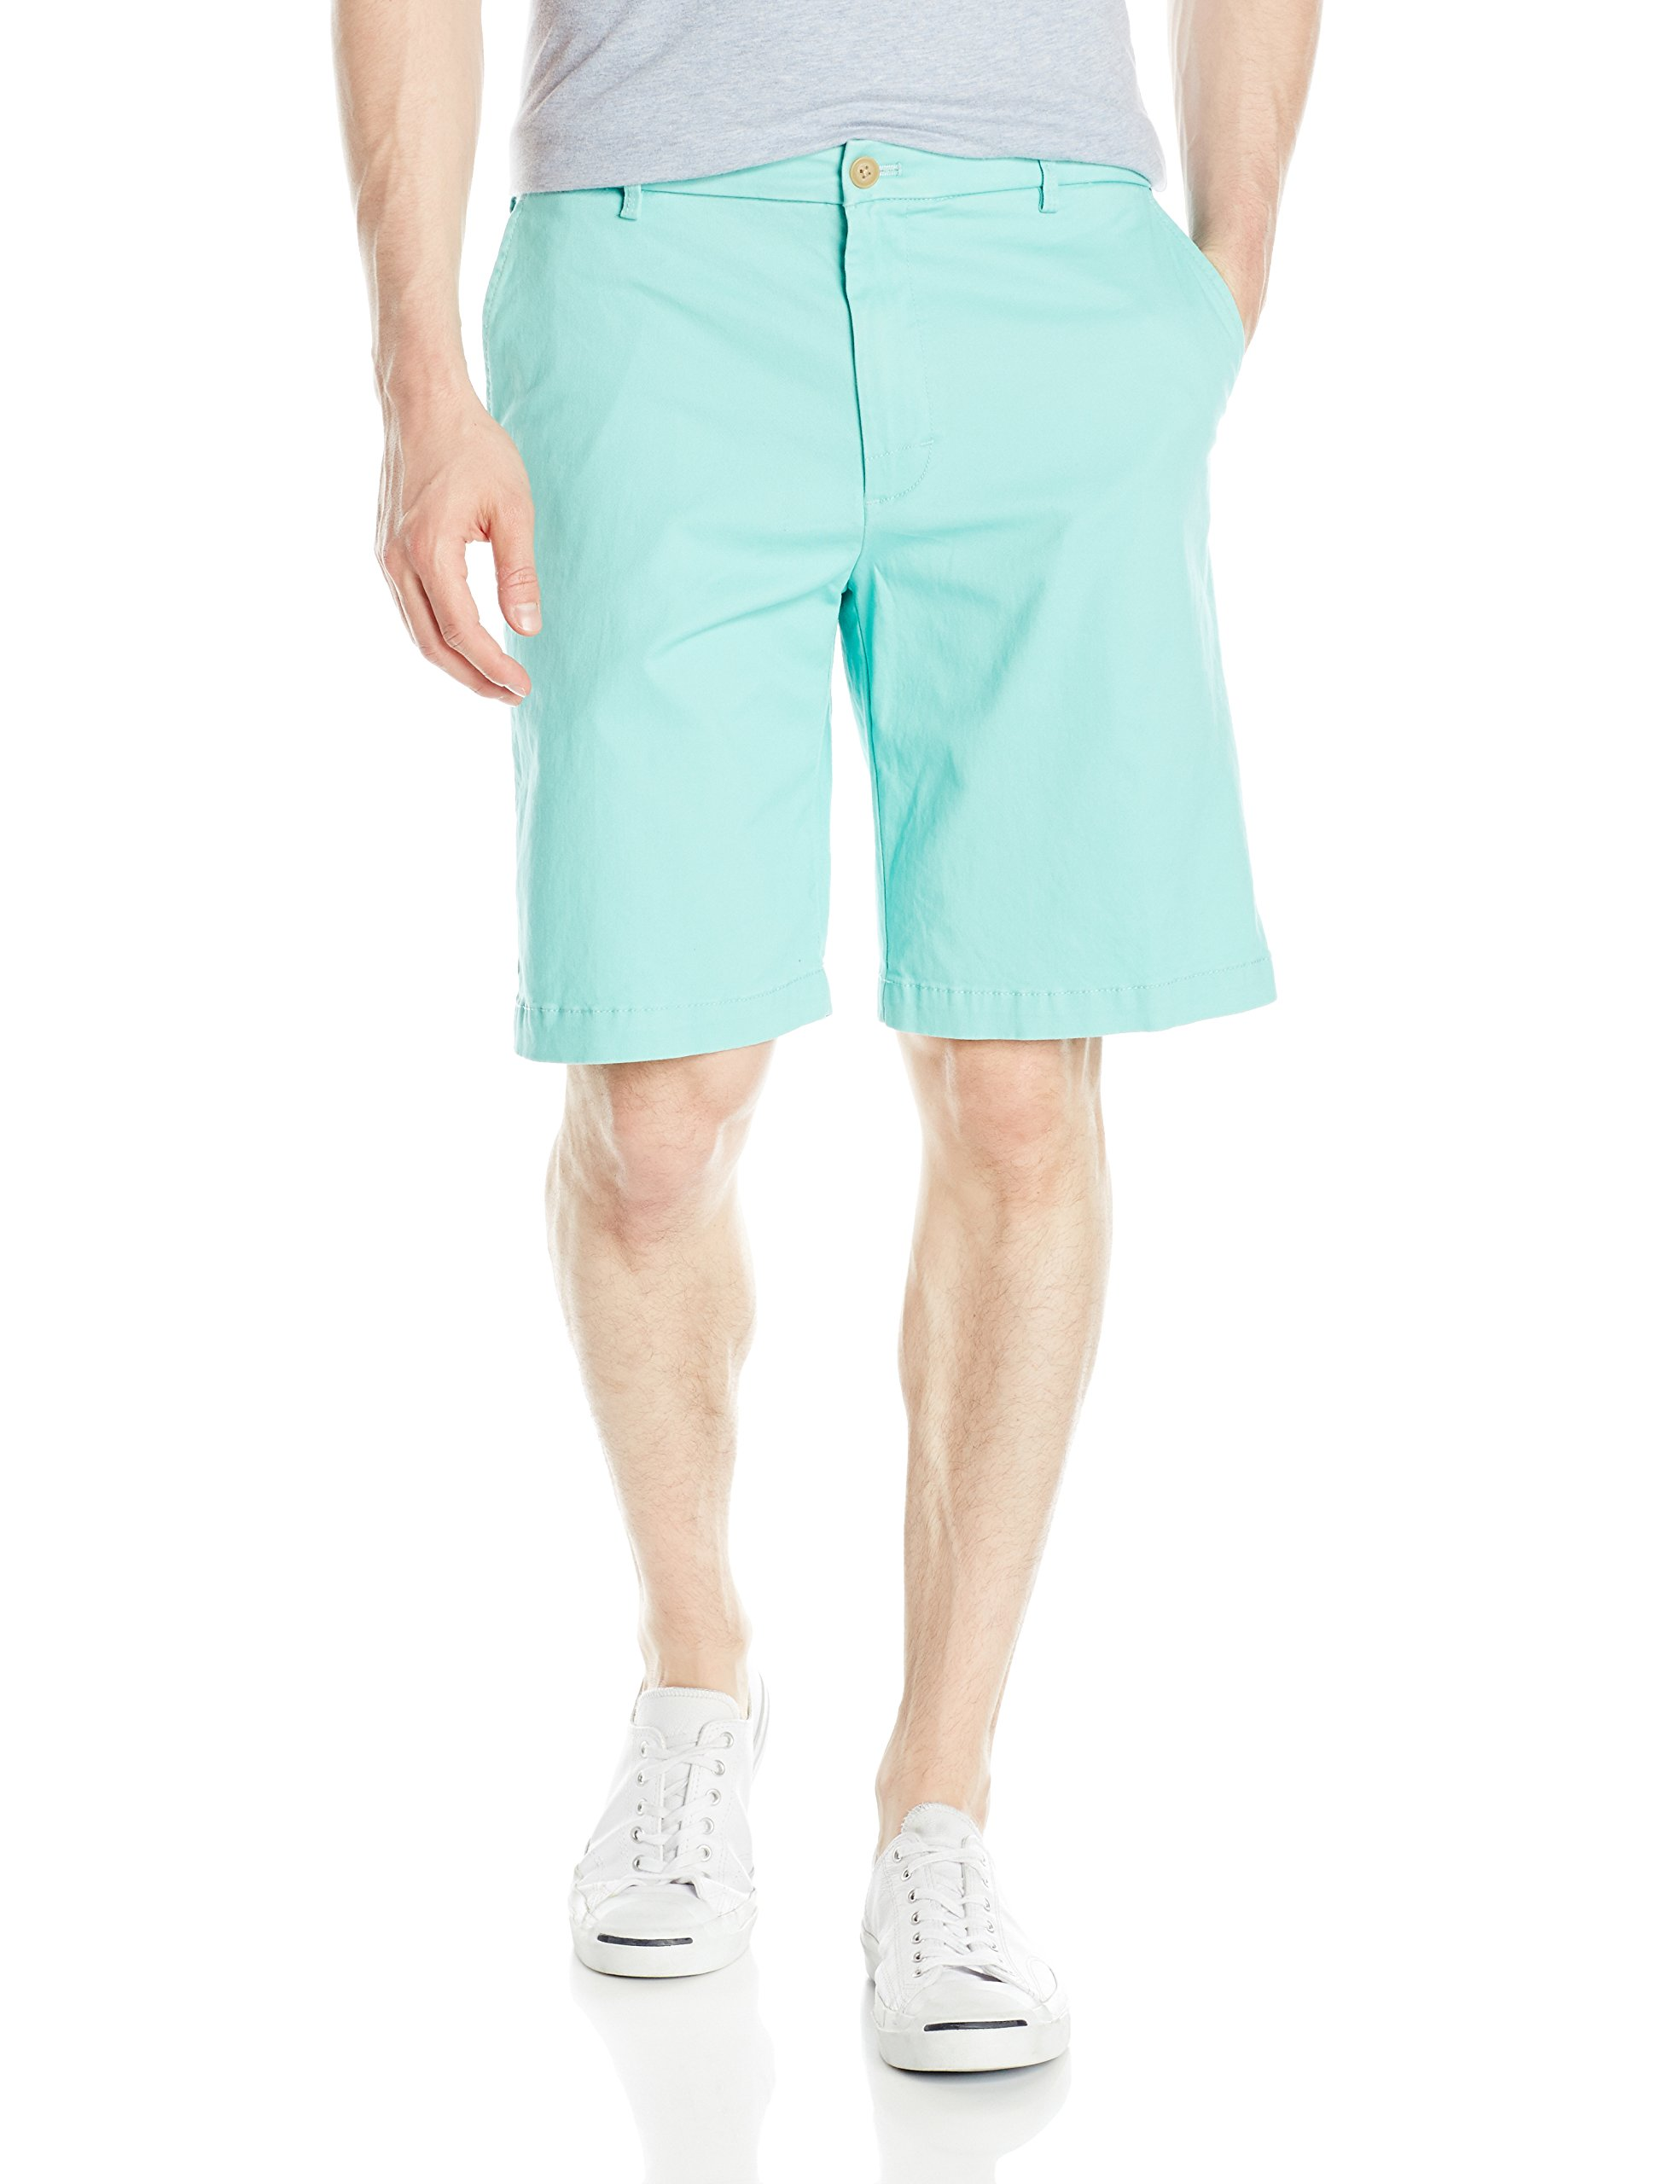 New-IZOD-Mens-Shorts-Green-Size-32-Saltwater-Stretch-Chino-Cascade-Flat-55-311